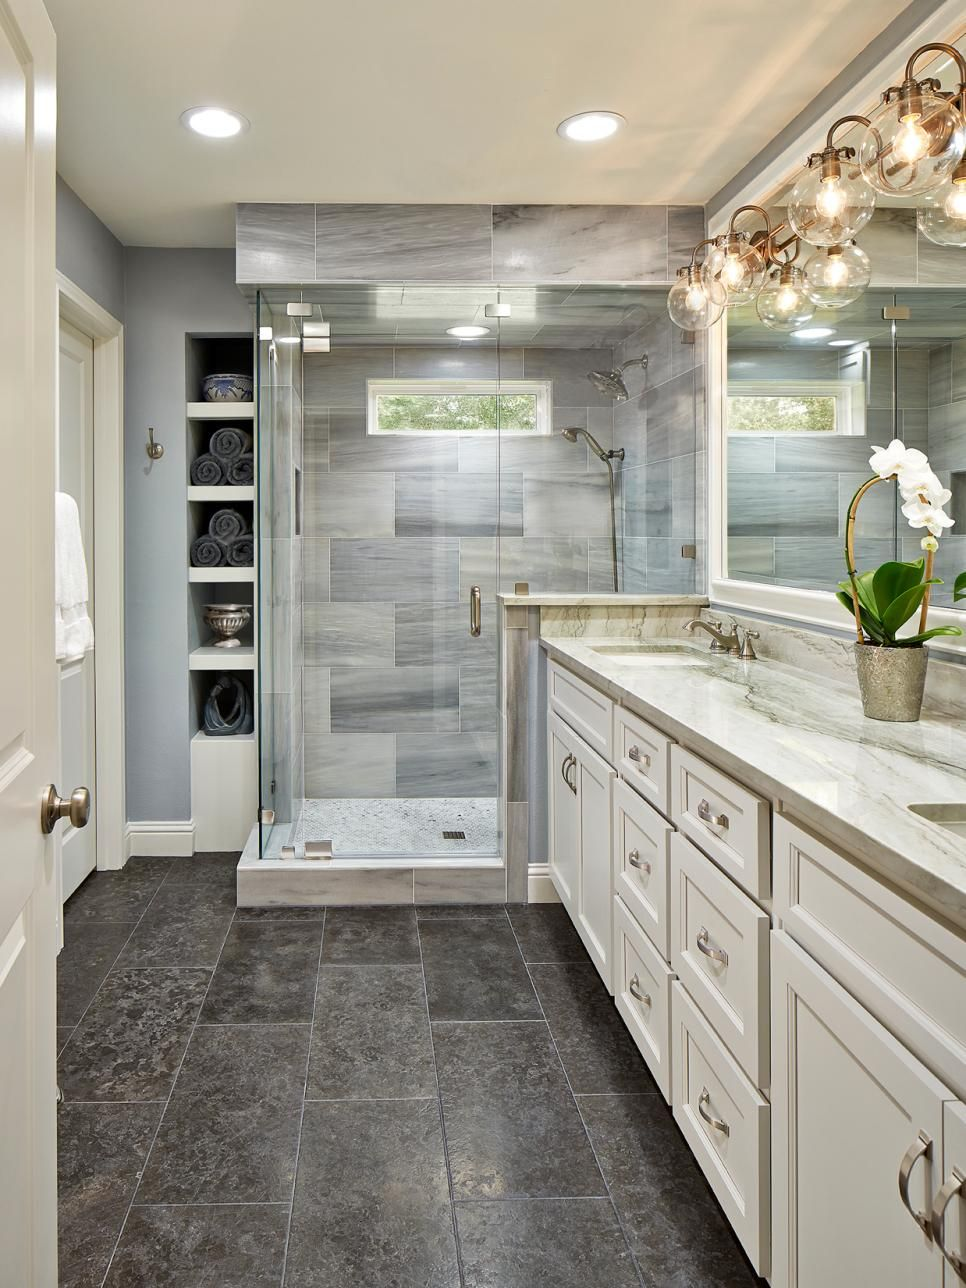 Traditional Bathroom Remodel this beautiful master bathroom pulls elements from traditional and